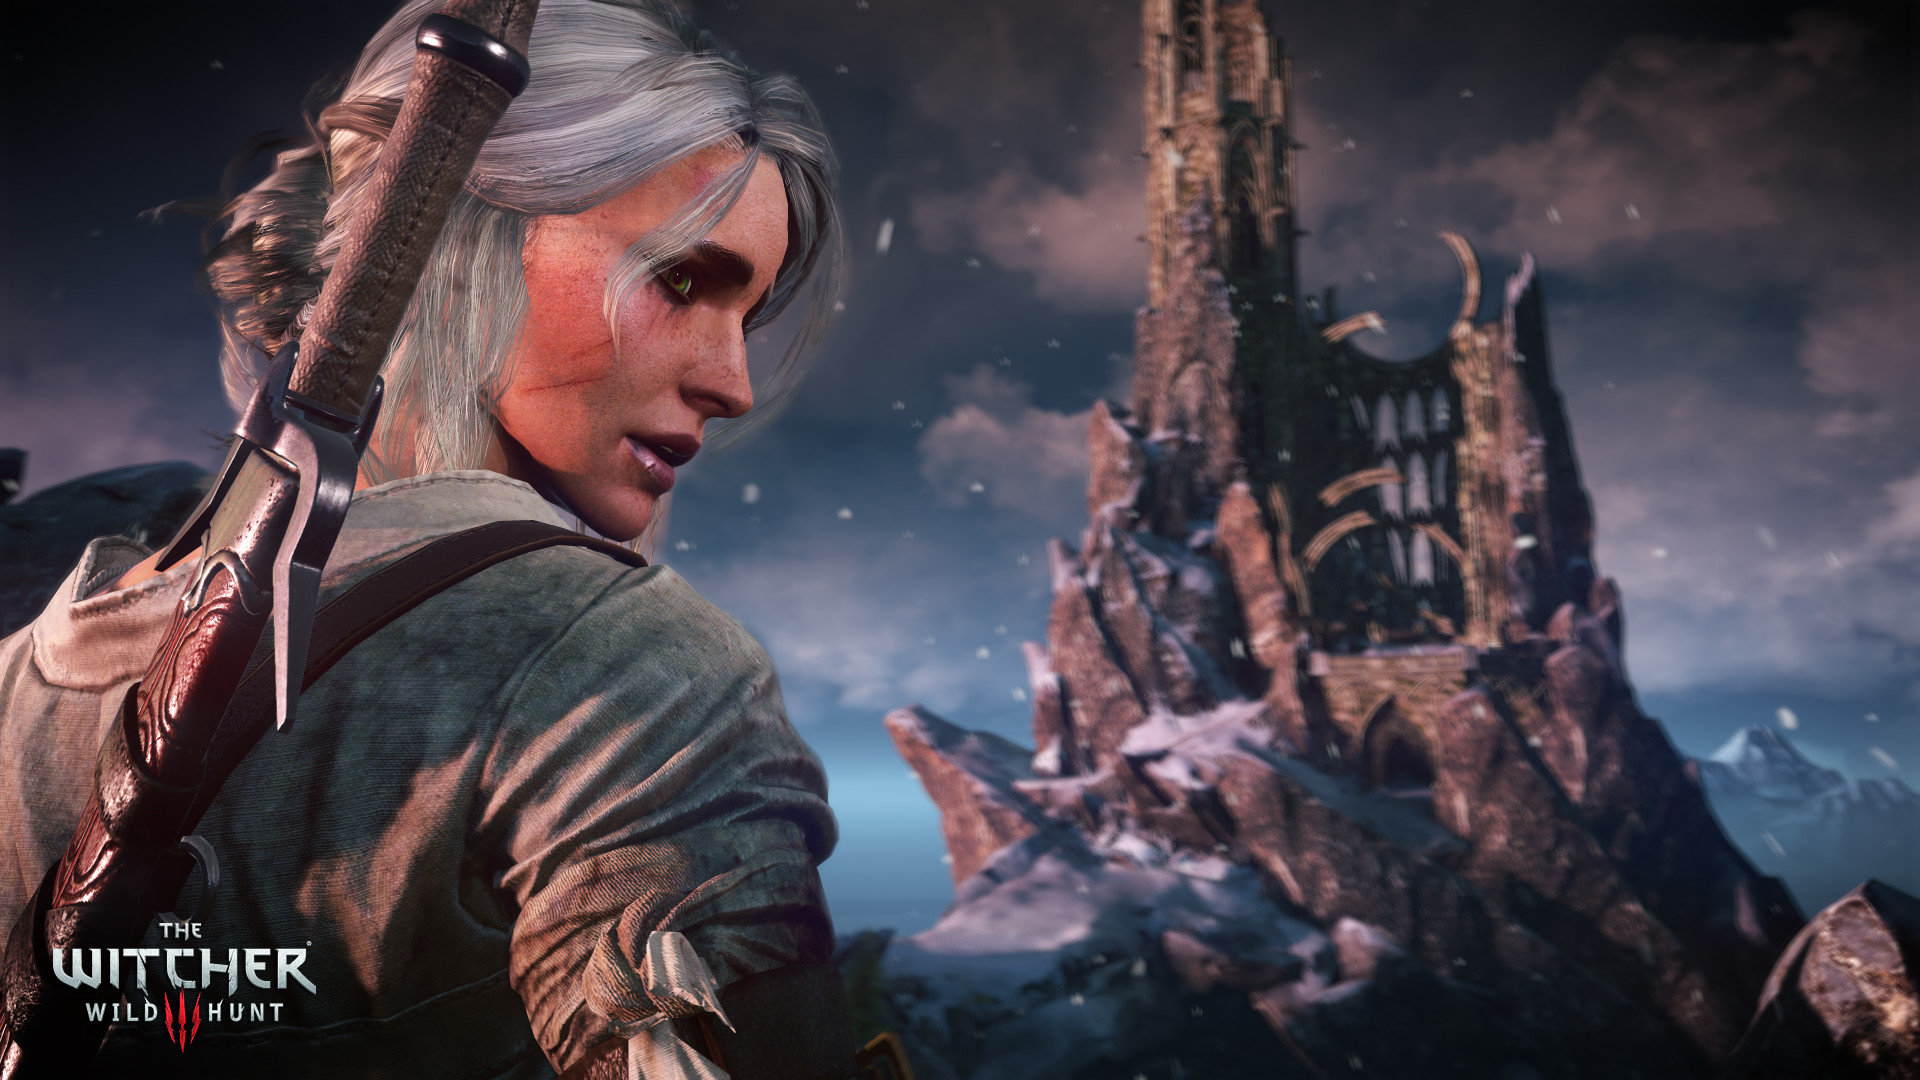 High Resolution The Witcher 3 Wild Hunt Full Hd Wallpaper